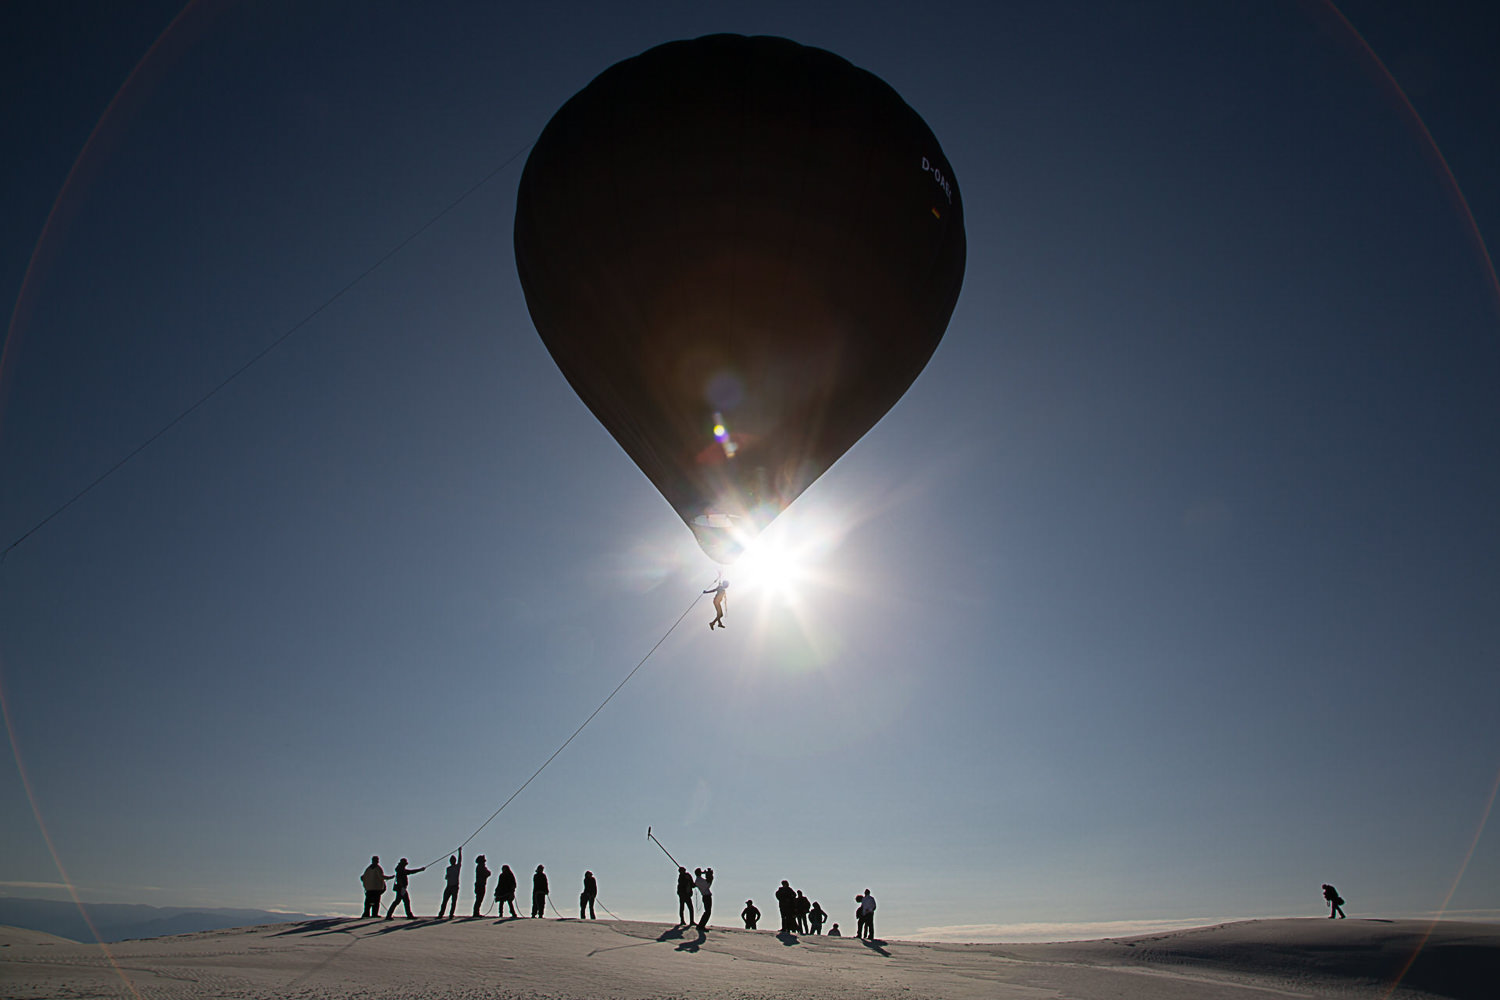 Aerocene launches at White Sands Dunes, 2015. (Credit: Studio Tomás Saraceno, © 2015)